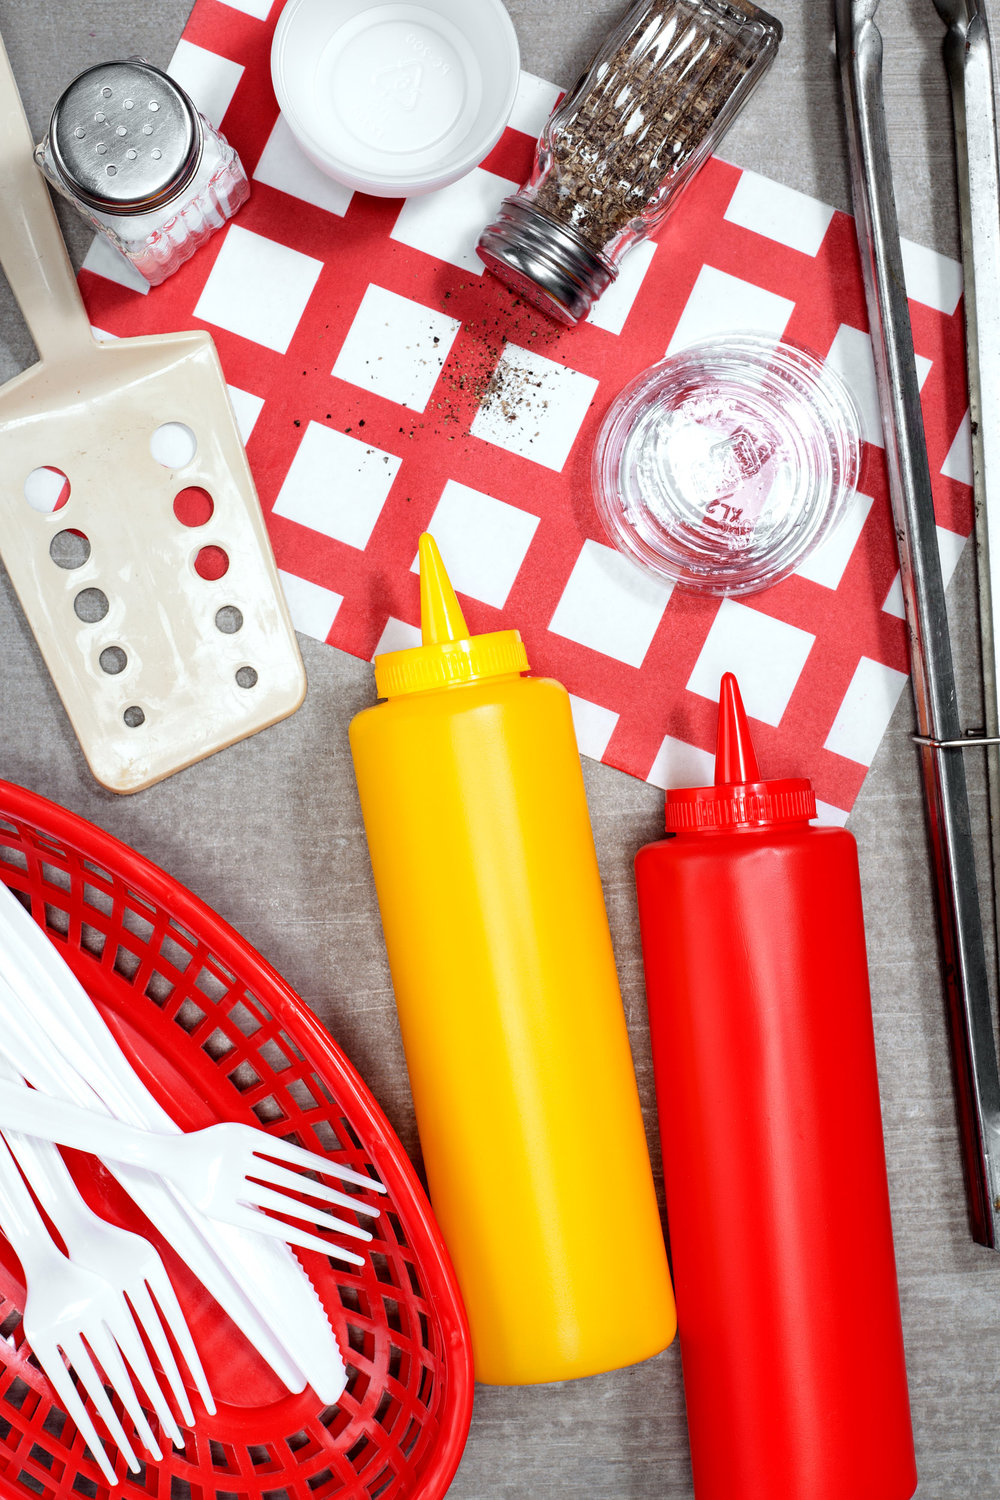 food-bbq-utensils-lesliegrow.jpg